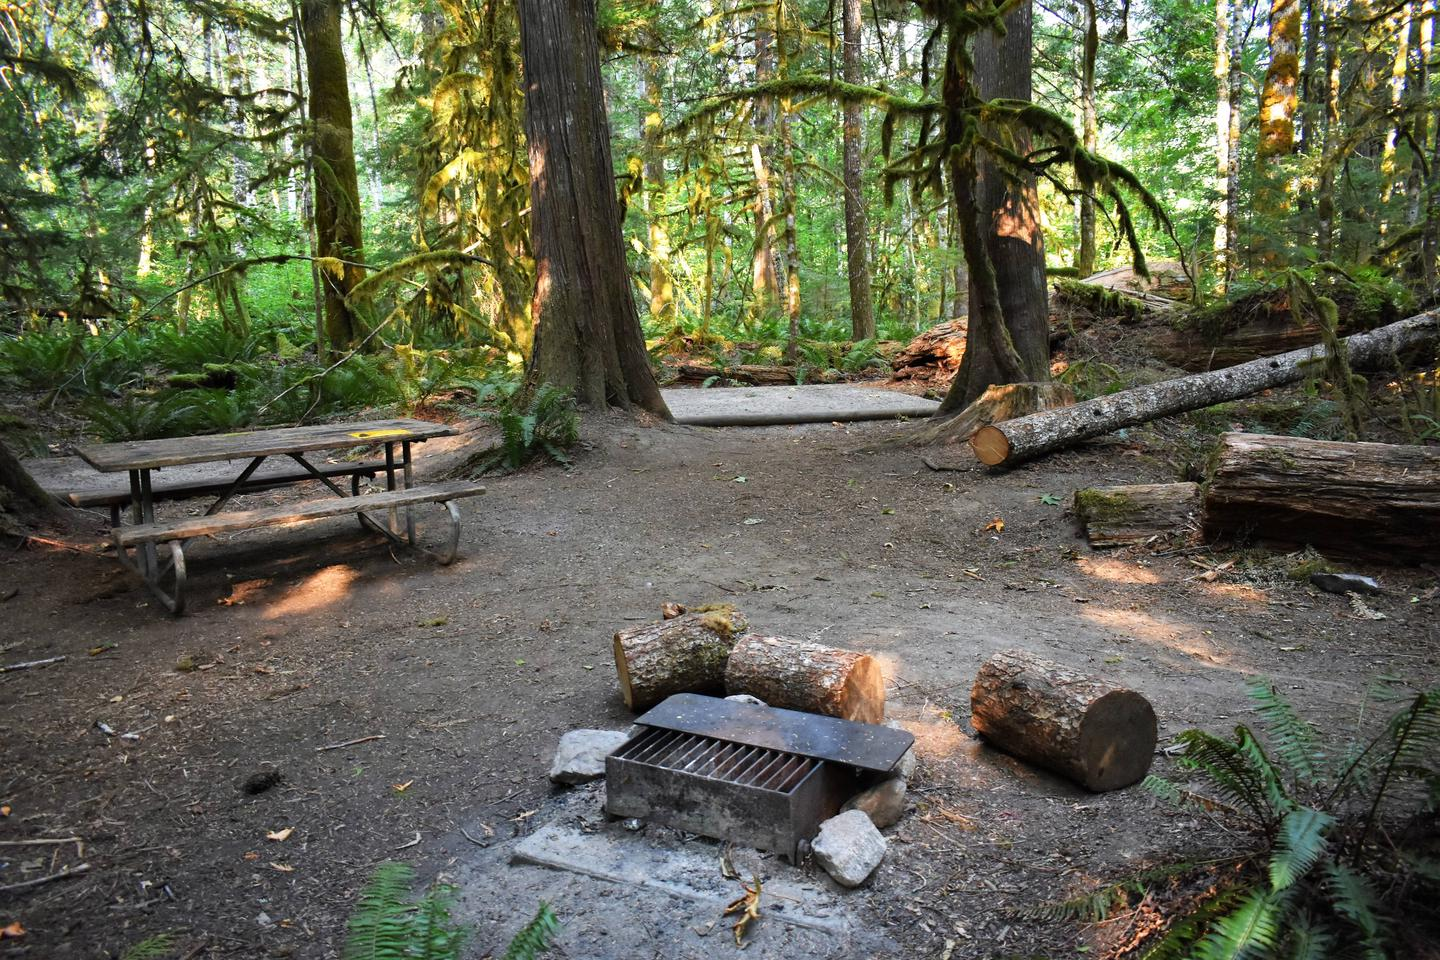 Picnic table, tent pads, and fire ringView of campsite